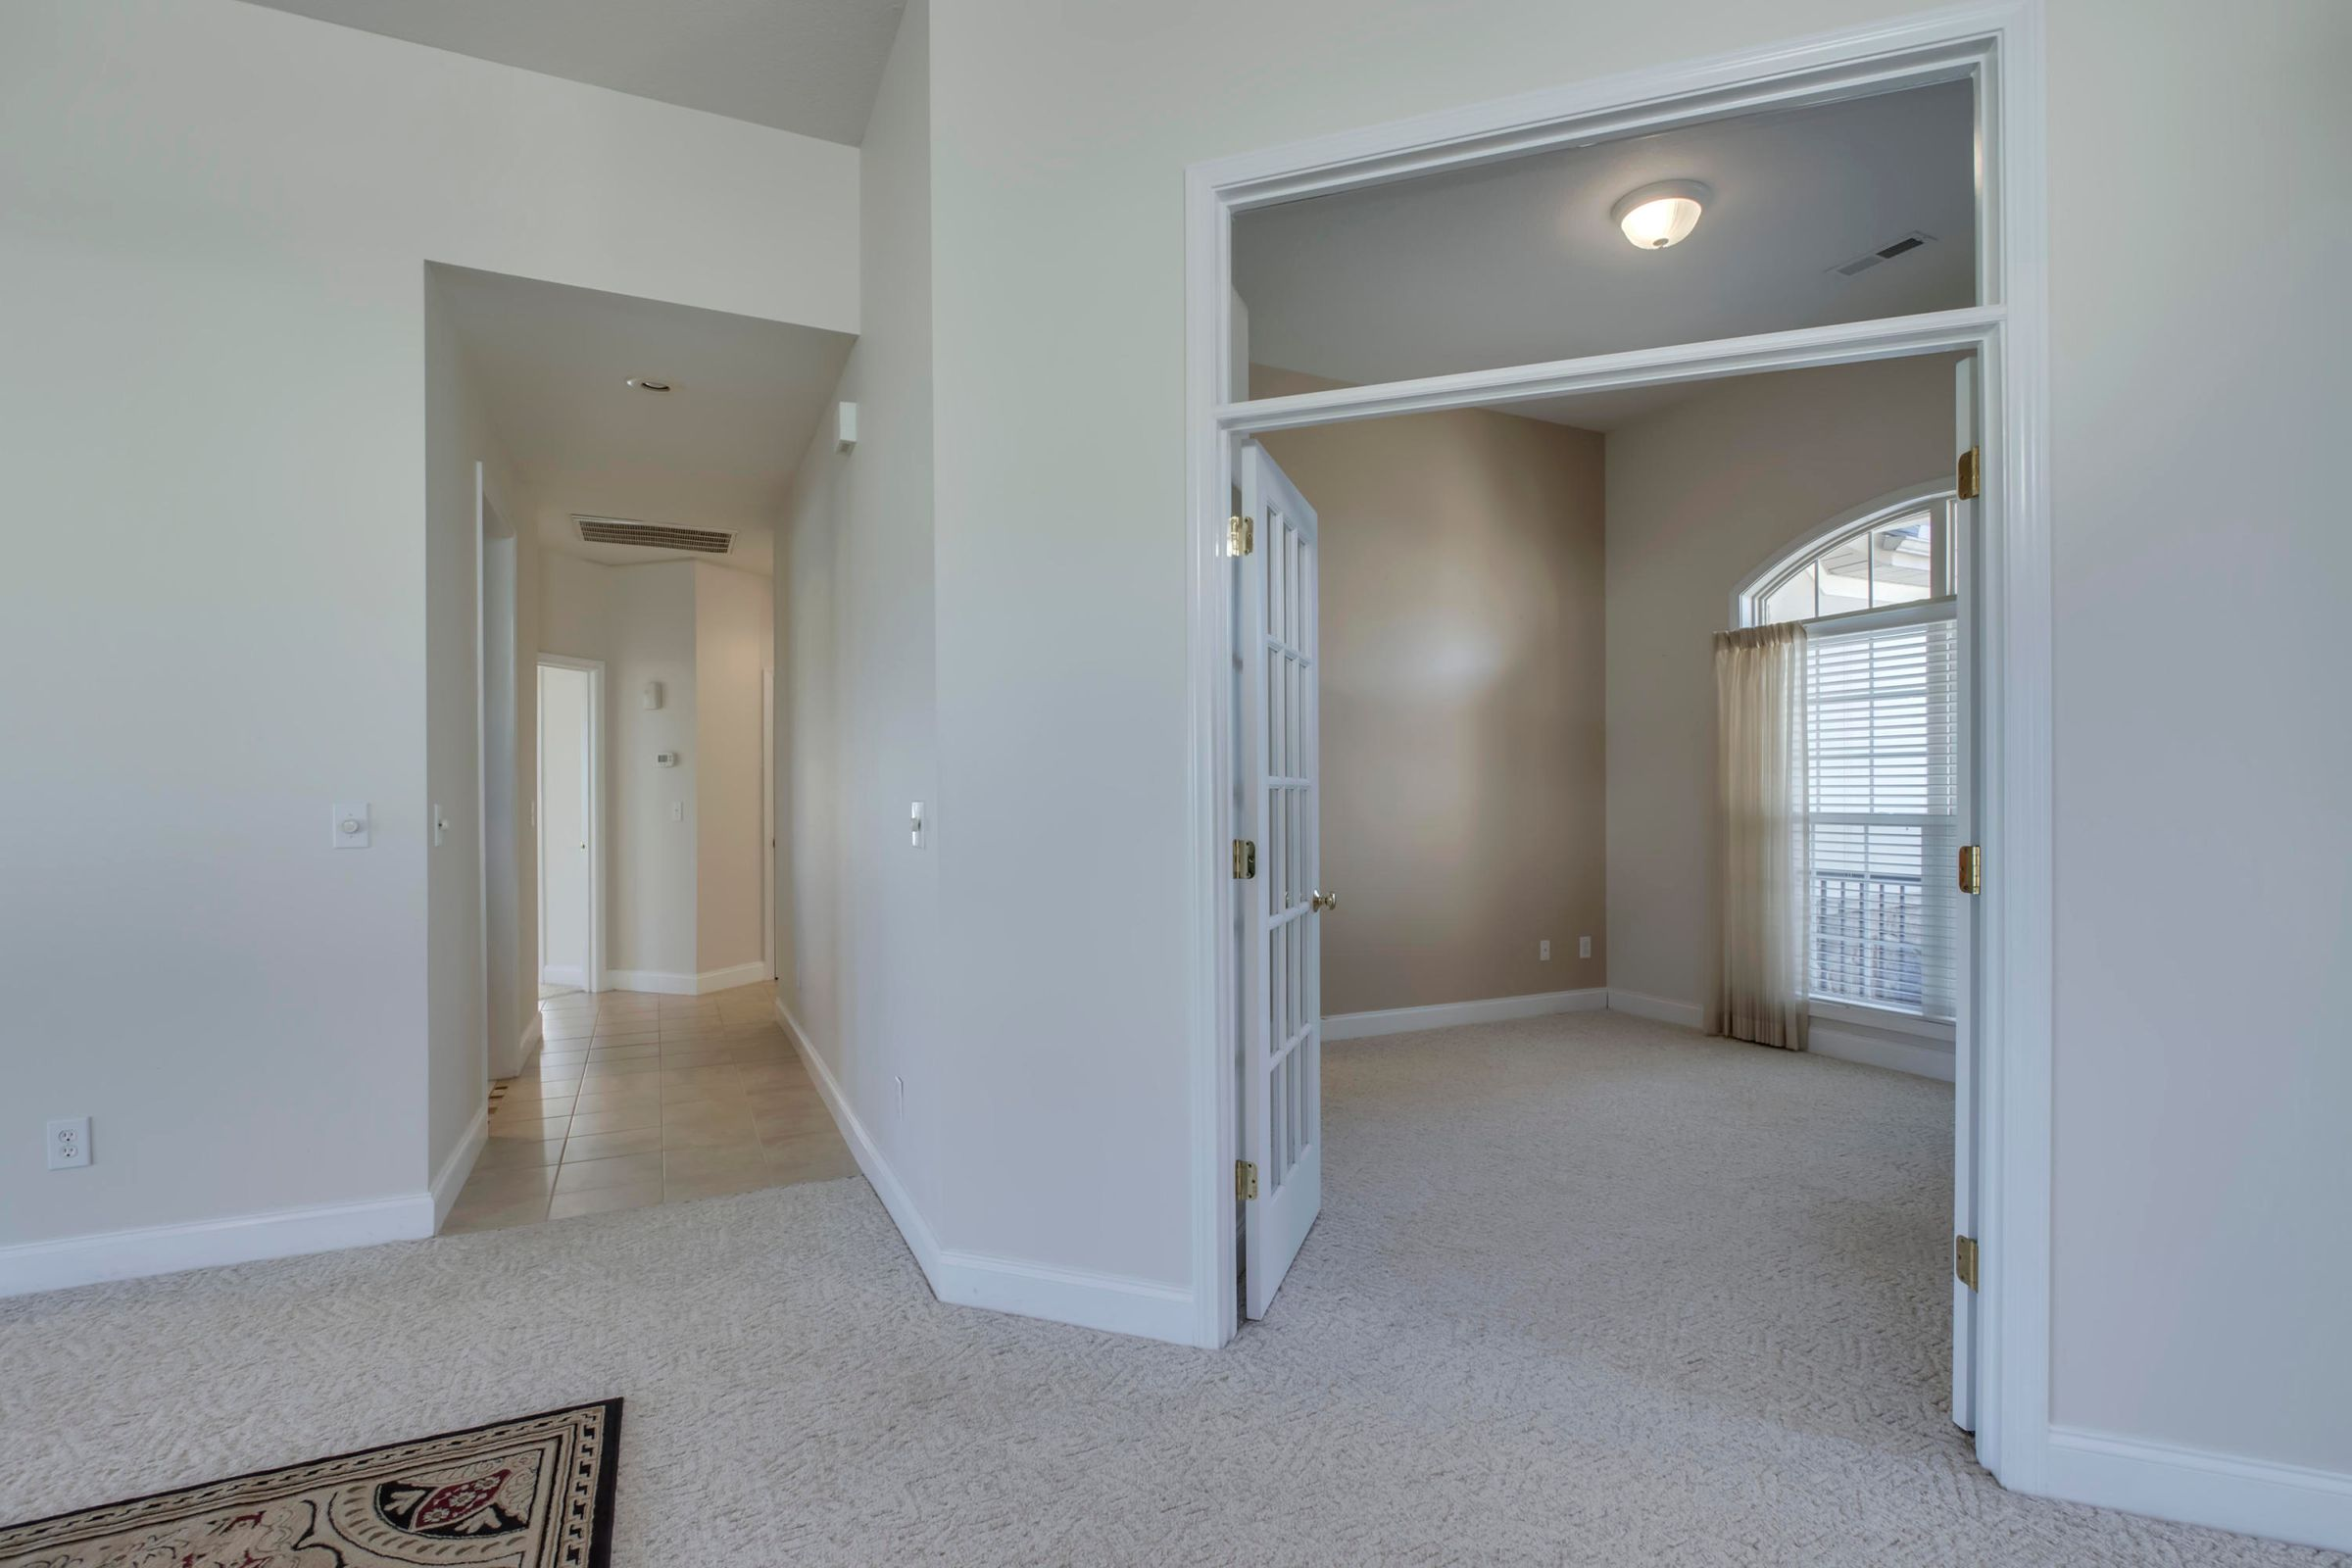 24_HeronCourt_184_FrontHall